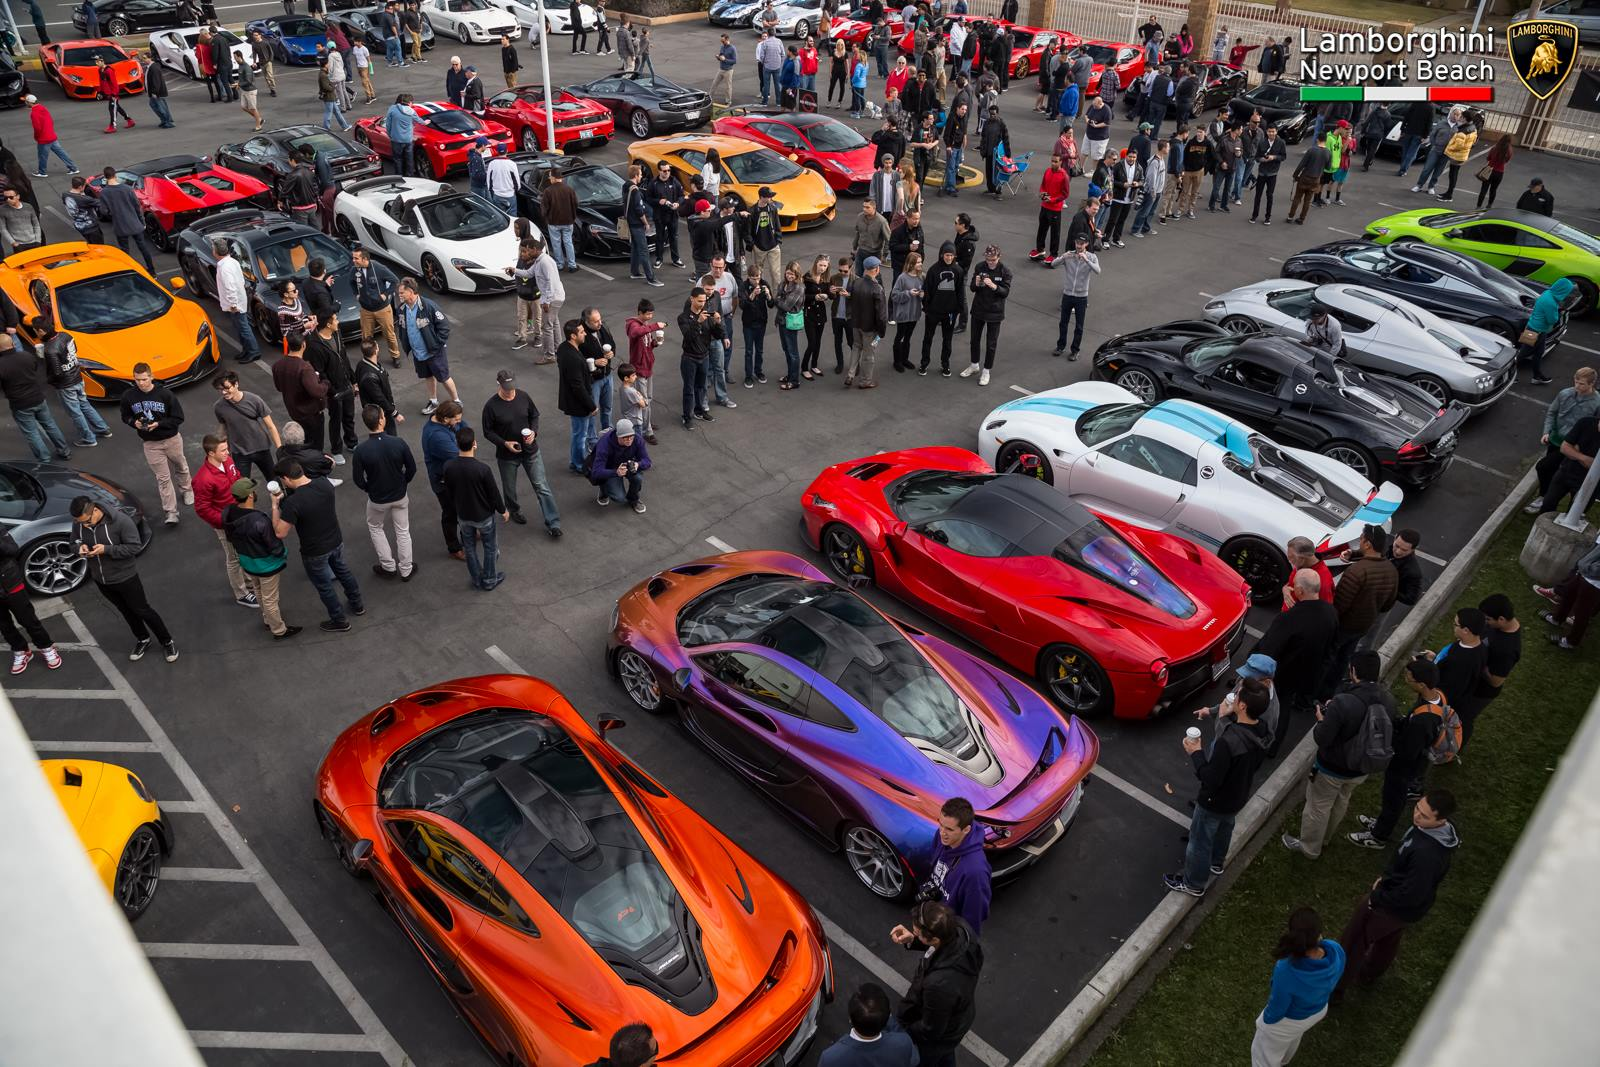 Lamborghini Newport Beach Kicks Off 2016 With Supercar Orgy Gtspirit